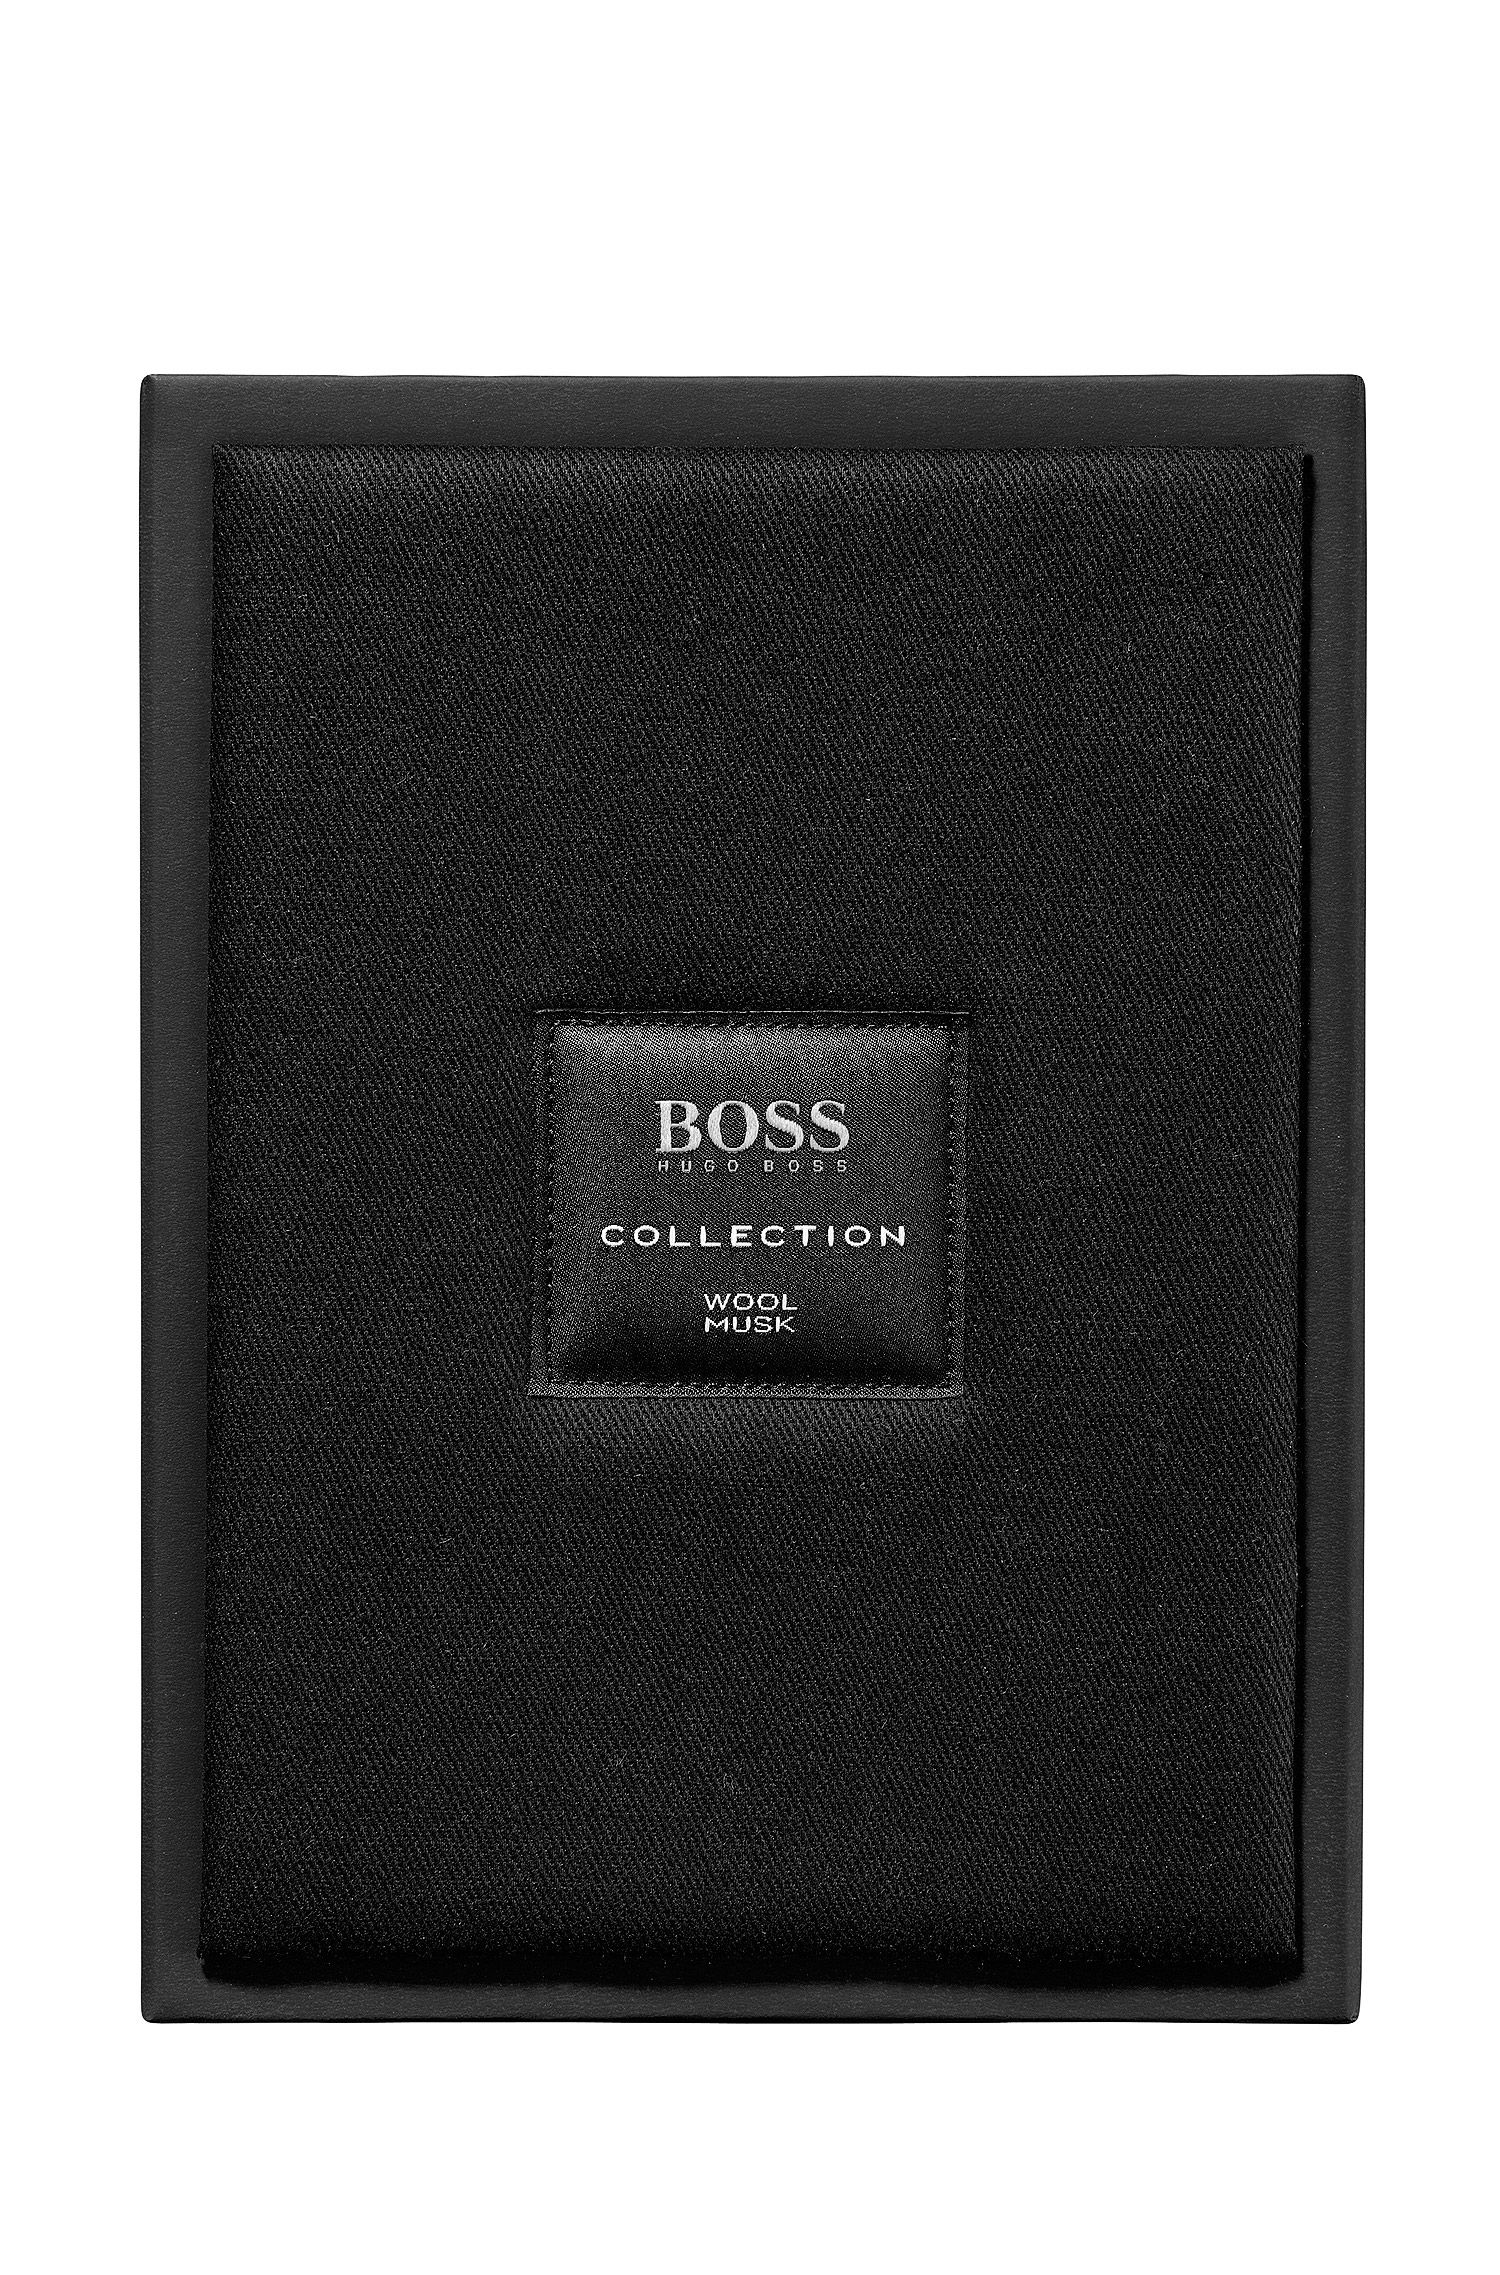 BOSS The Collection - Eau de Parfum Wool Musk